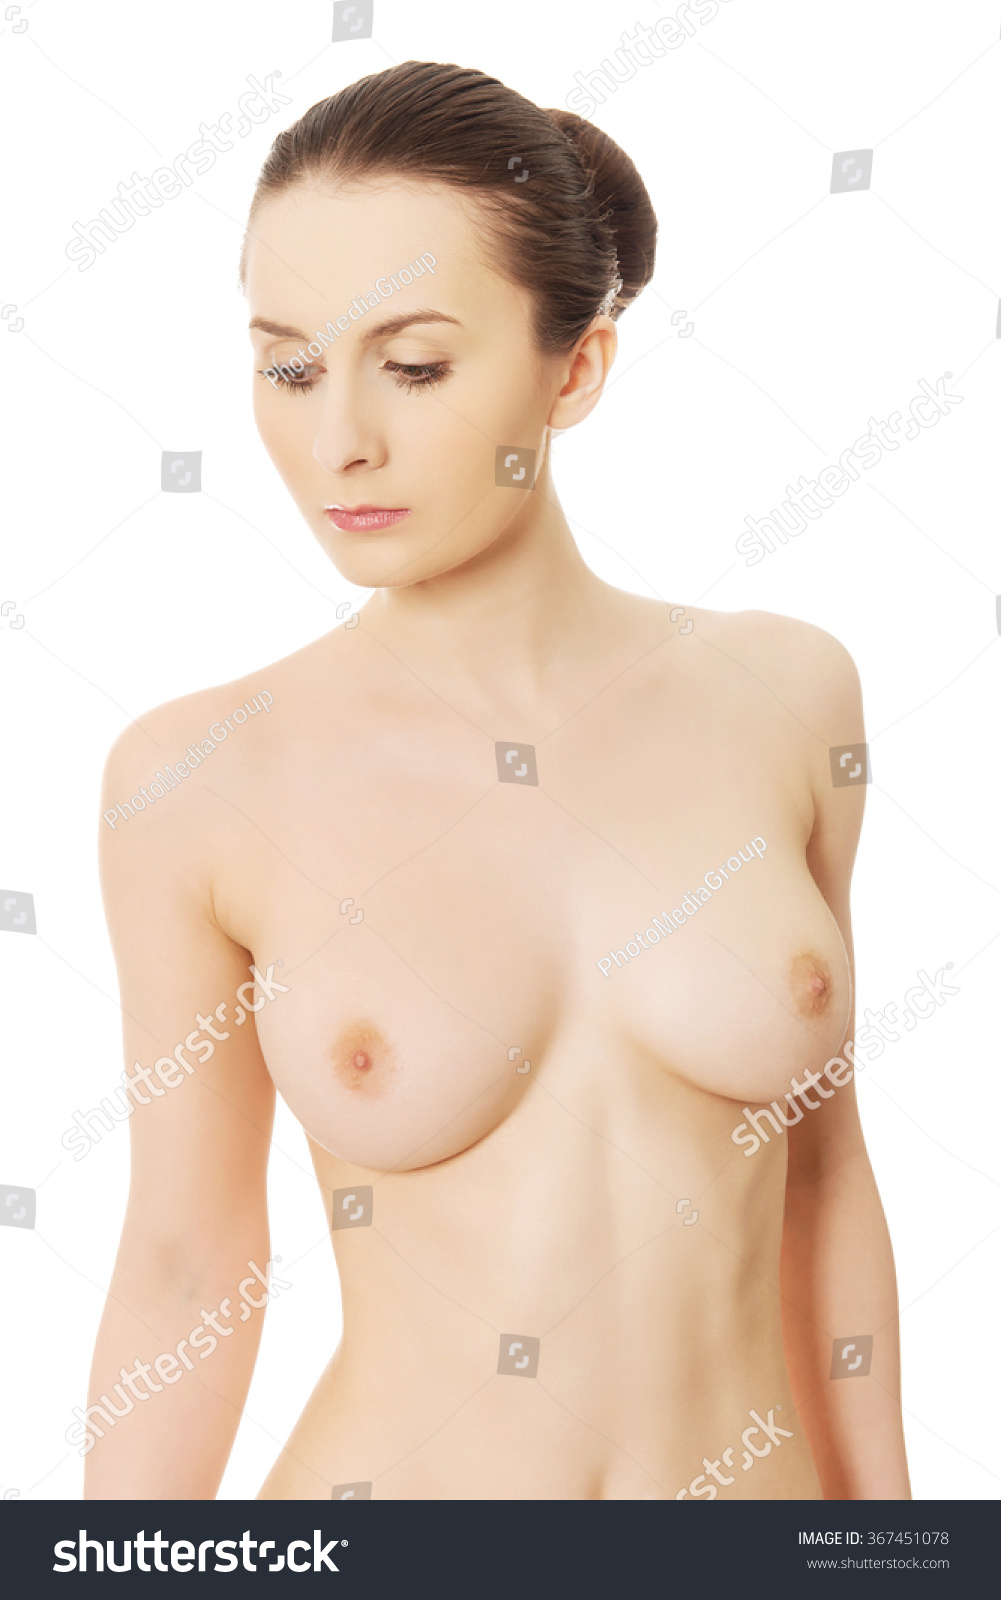 Womens breast photo